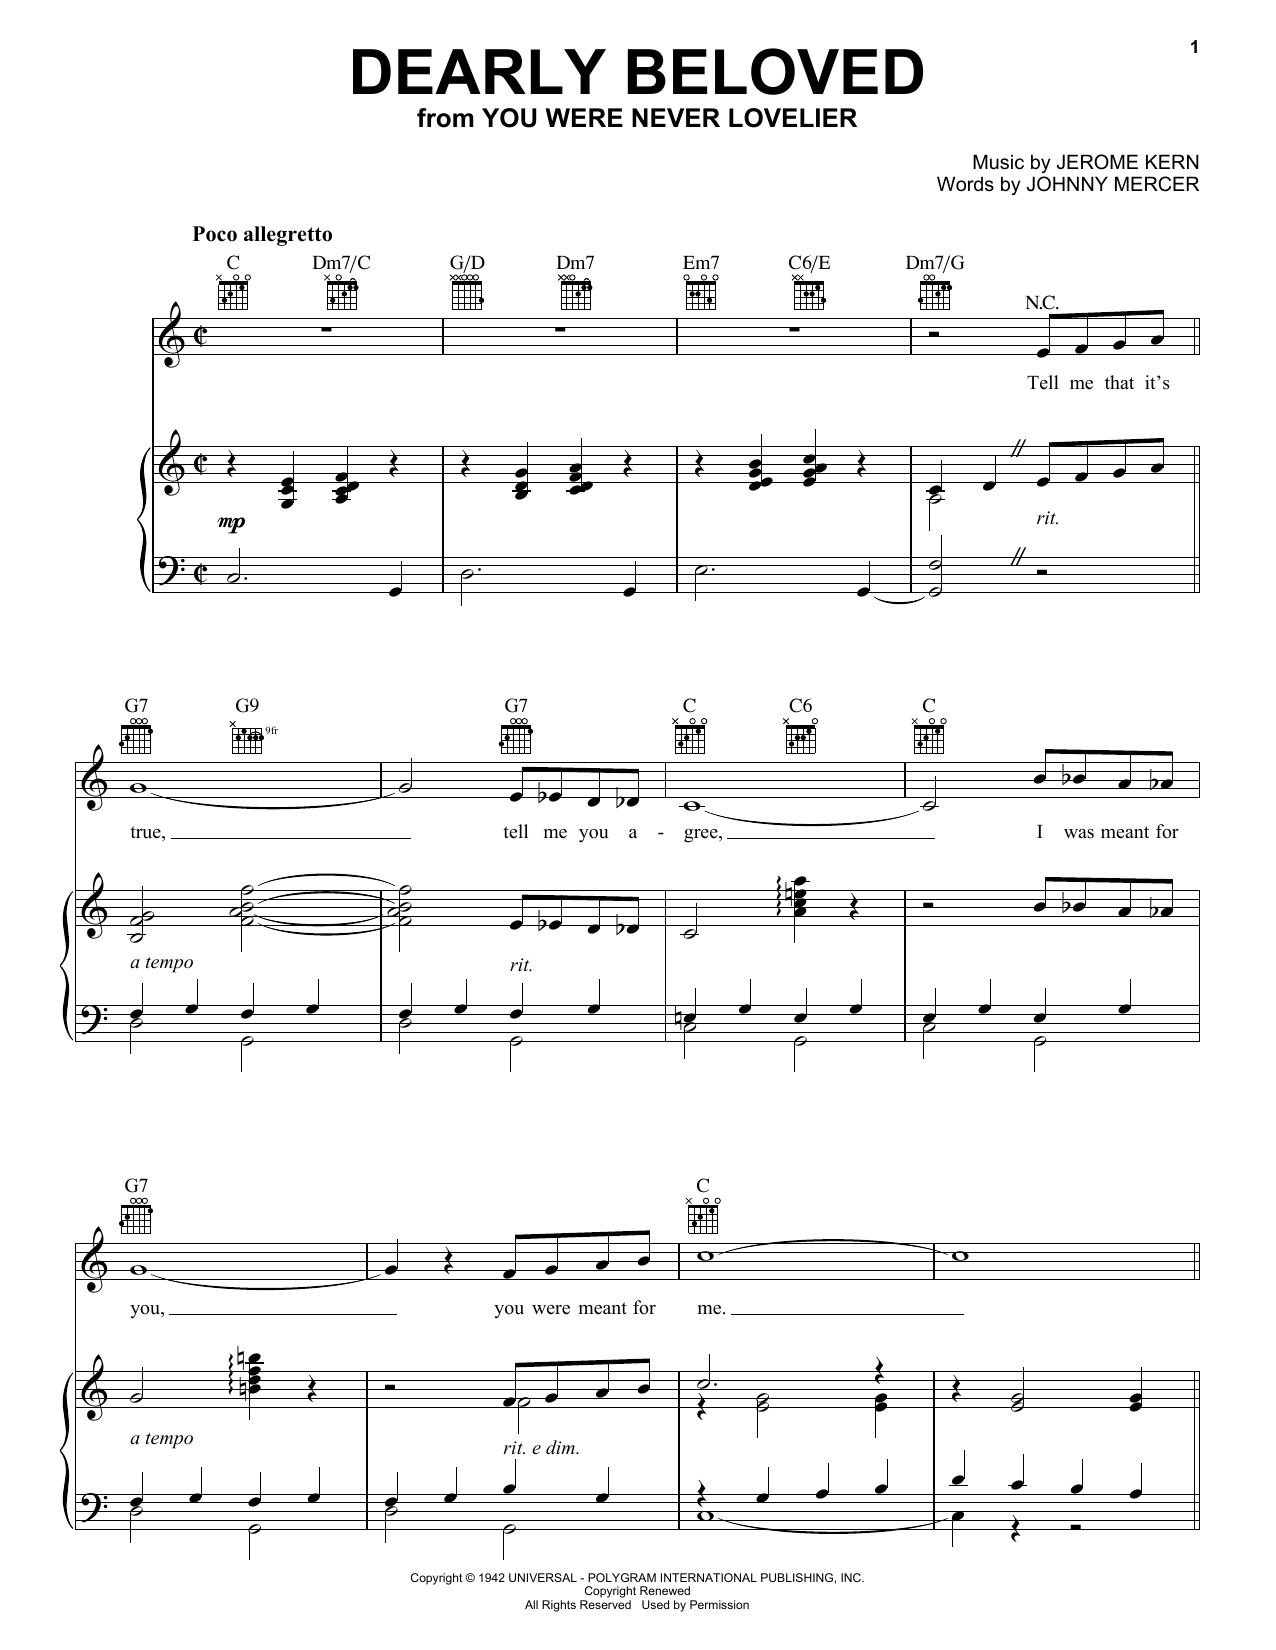 Jerome Kern Dearly Beloved sheet music notes and chords. Download Printable PDF.